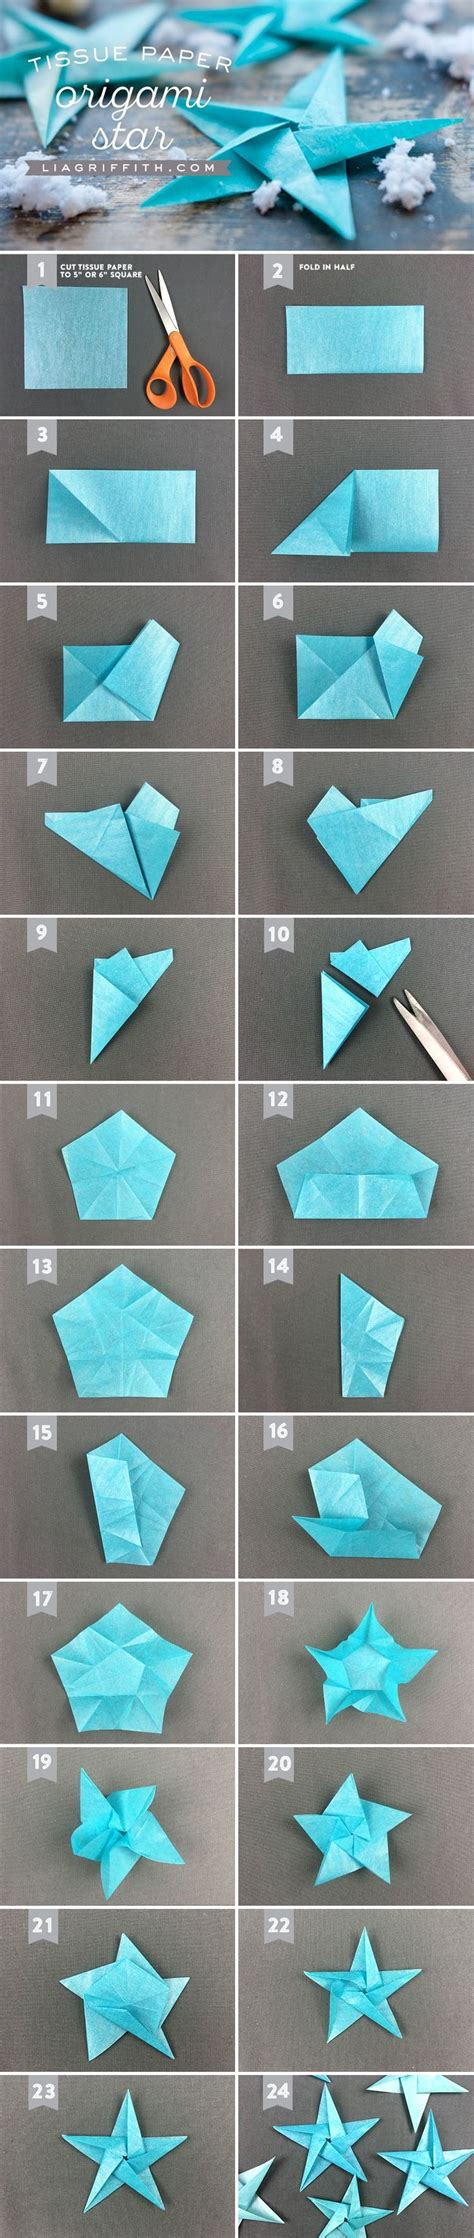 How To Make 3d Paper Crafts - 25 best ideas about origami step by step on